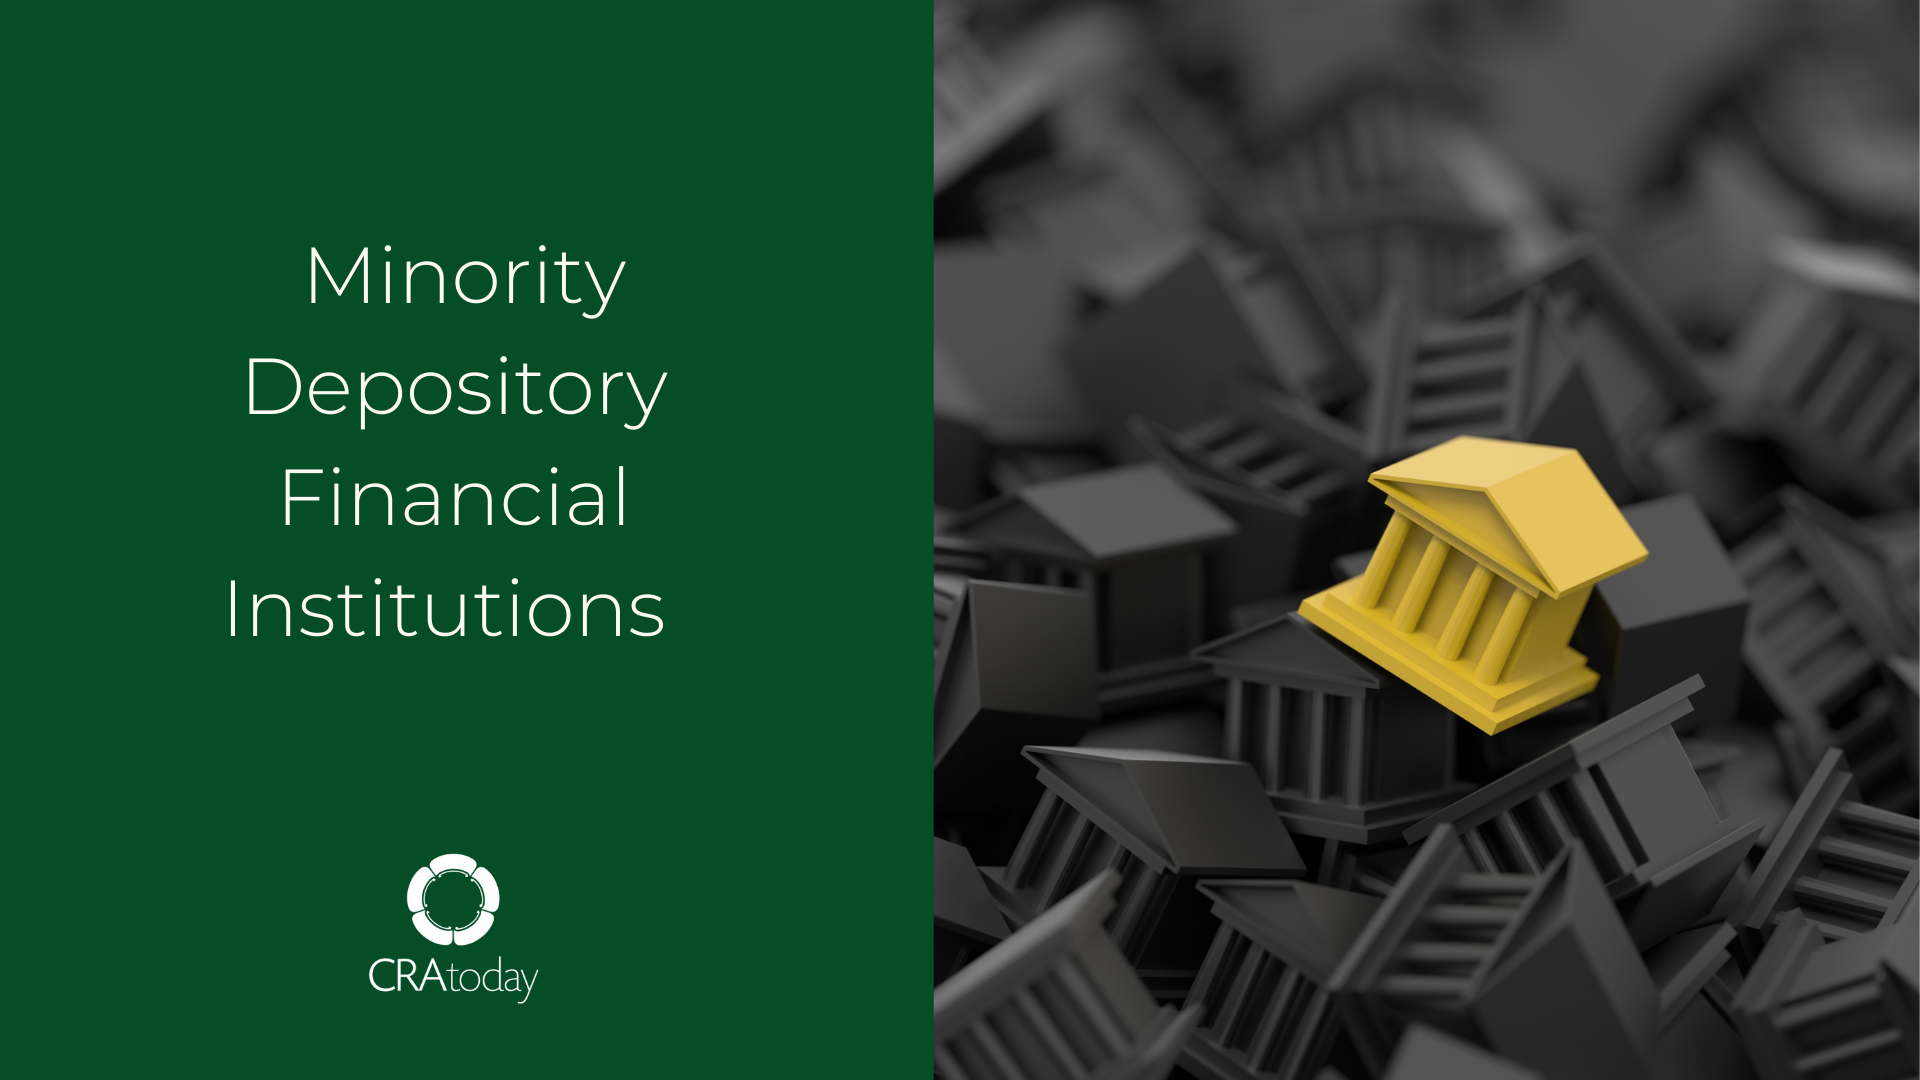 Minority Depository Financial Institutions